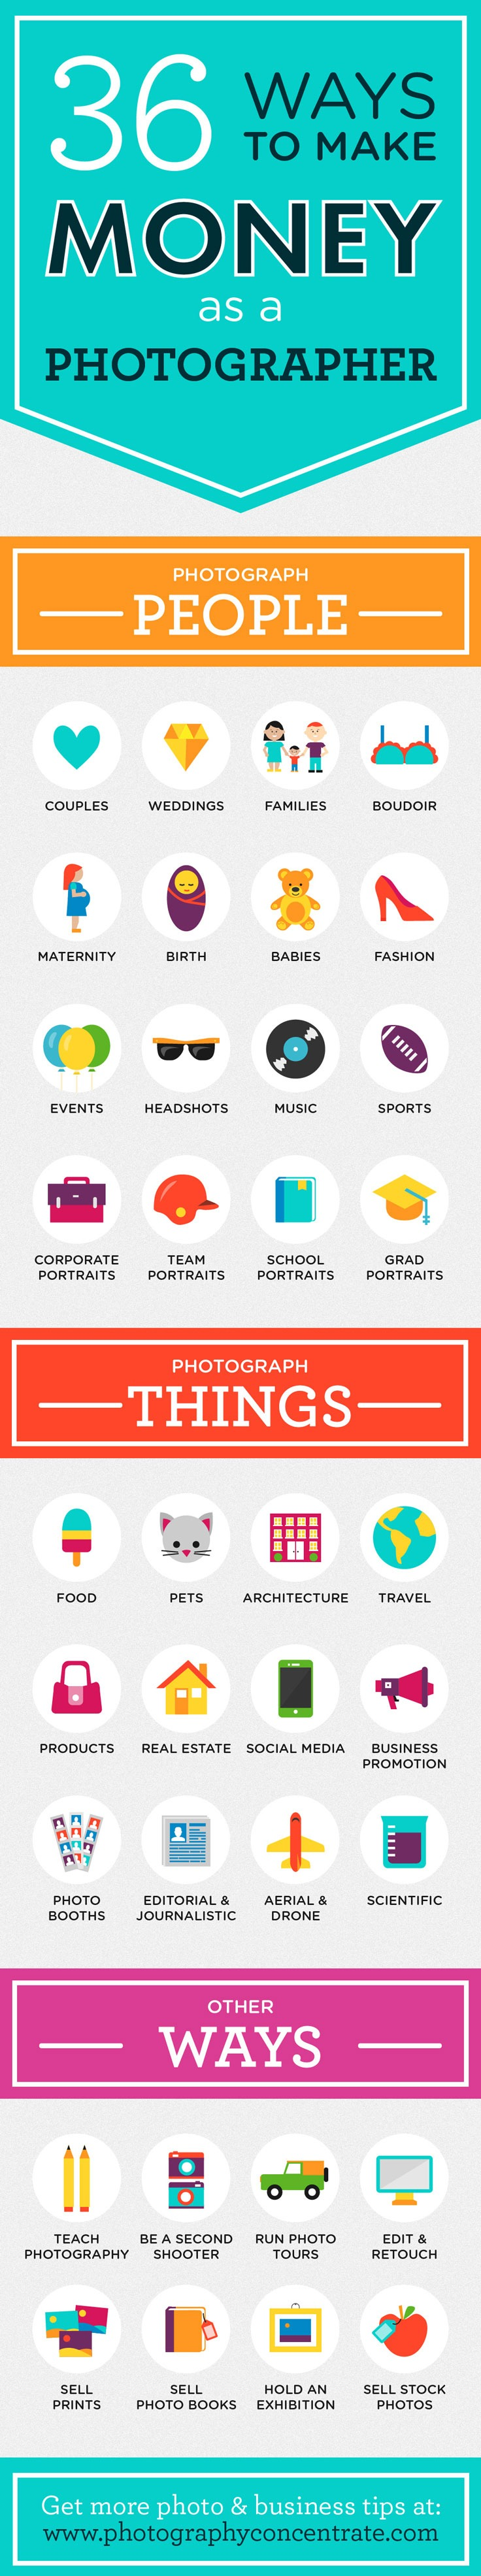 36 Ways to Make Money as a Photographer #infographic